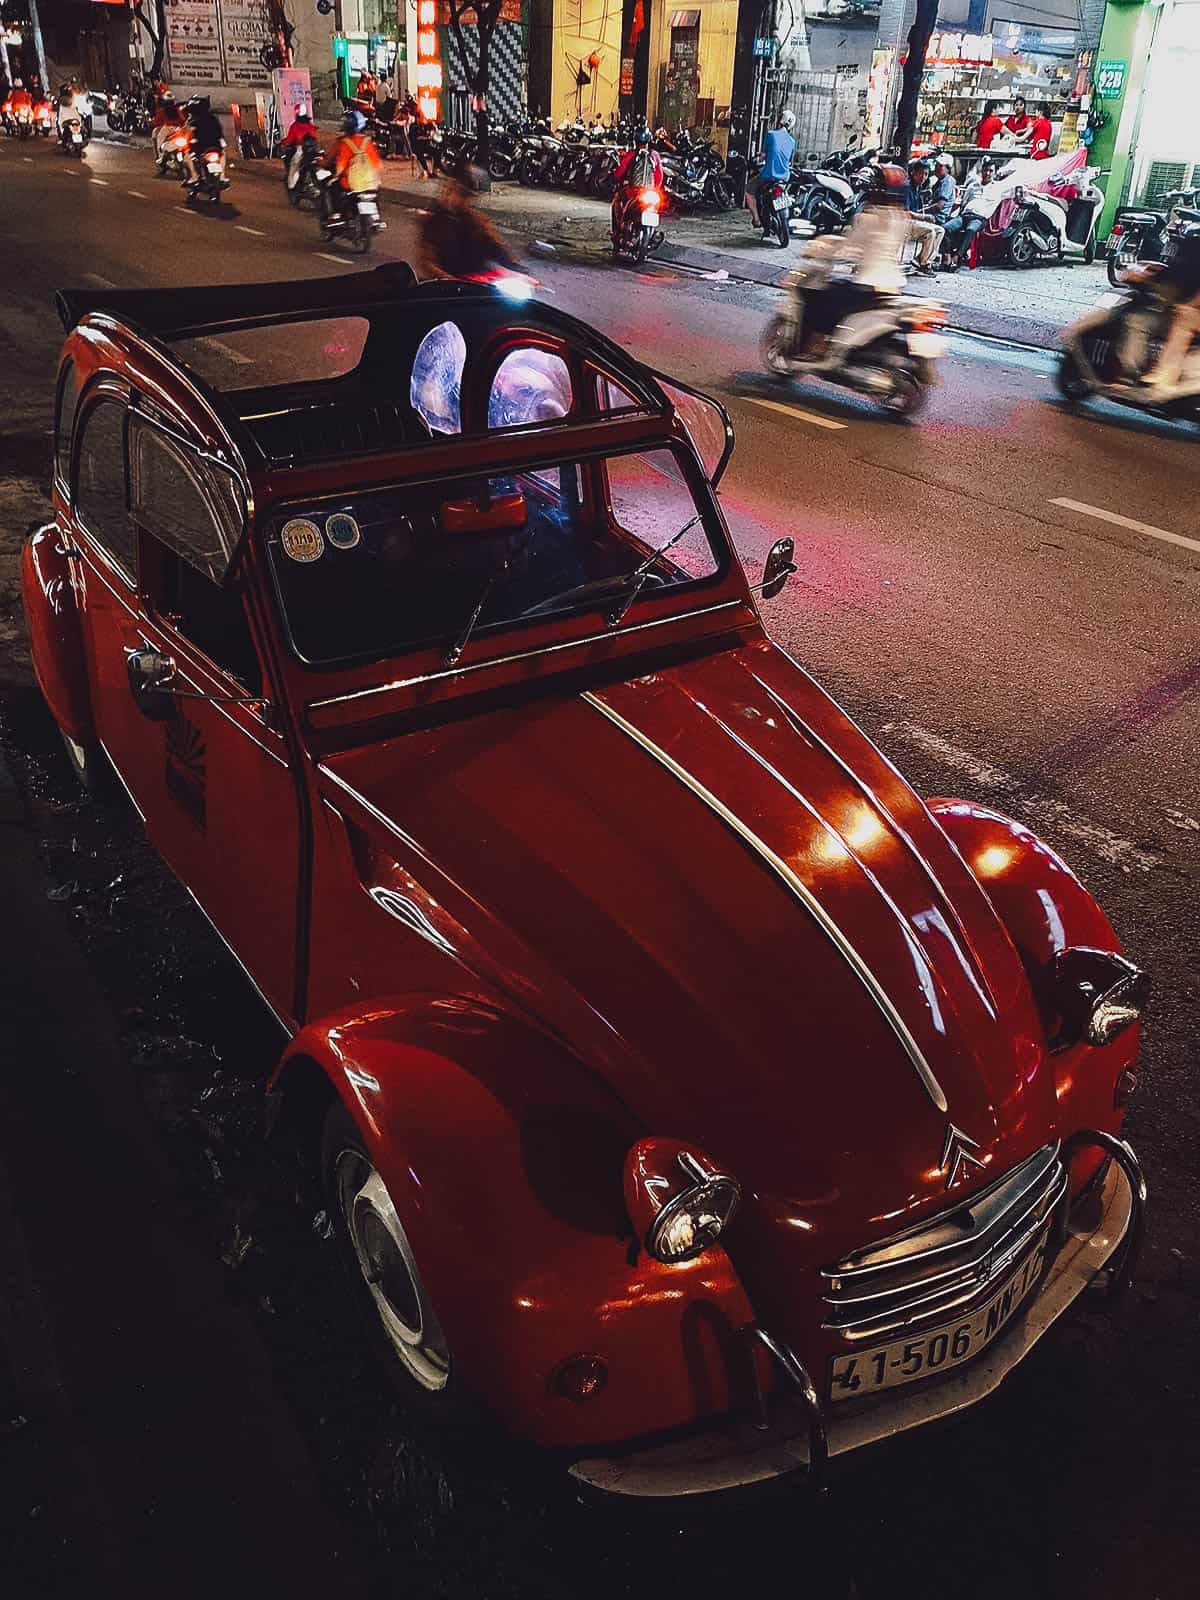 Vintage Citroen 2CV in Saigon